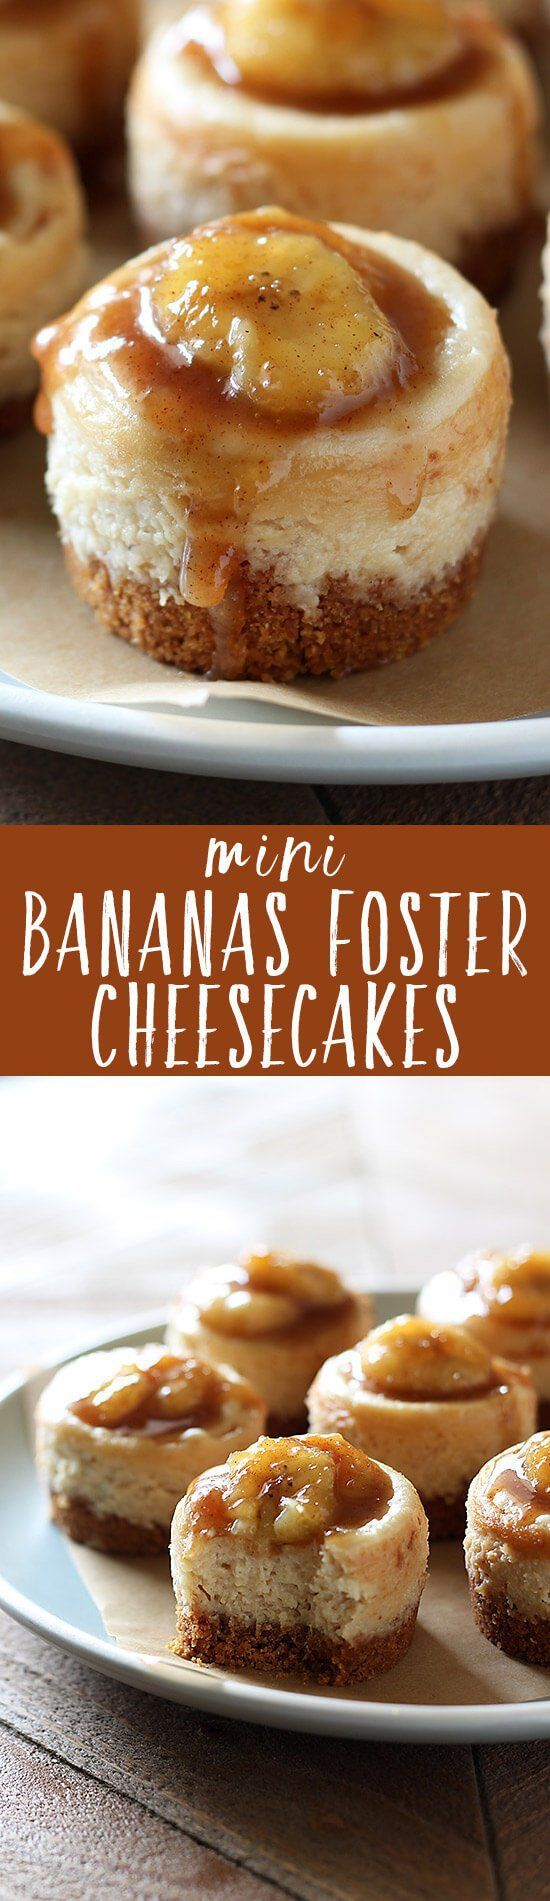 The BEST! Everyone loves bananas foster but when added to cheesecake?! Too good!!